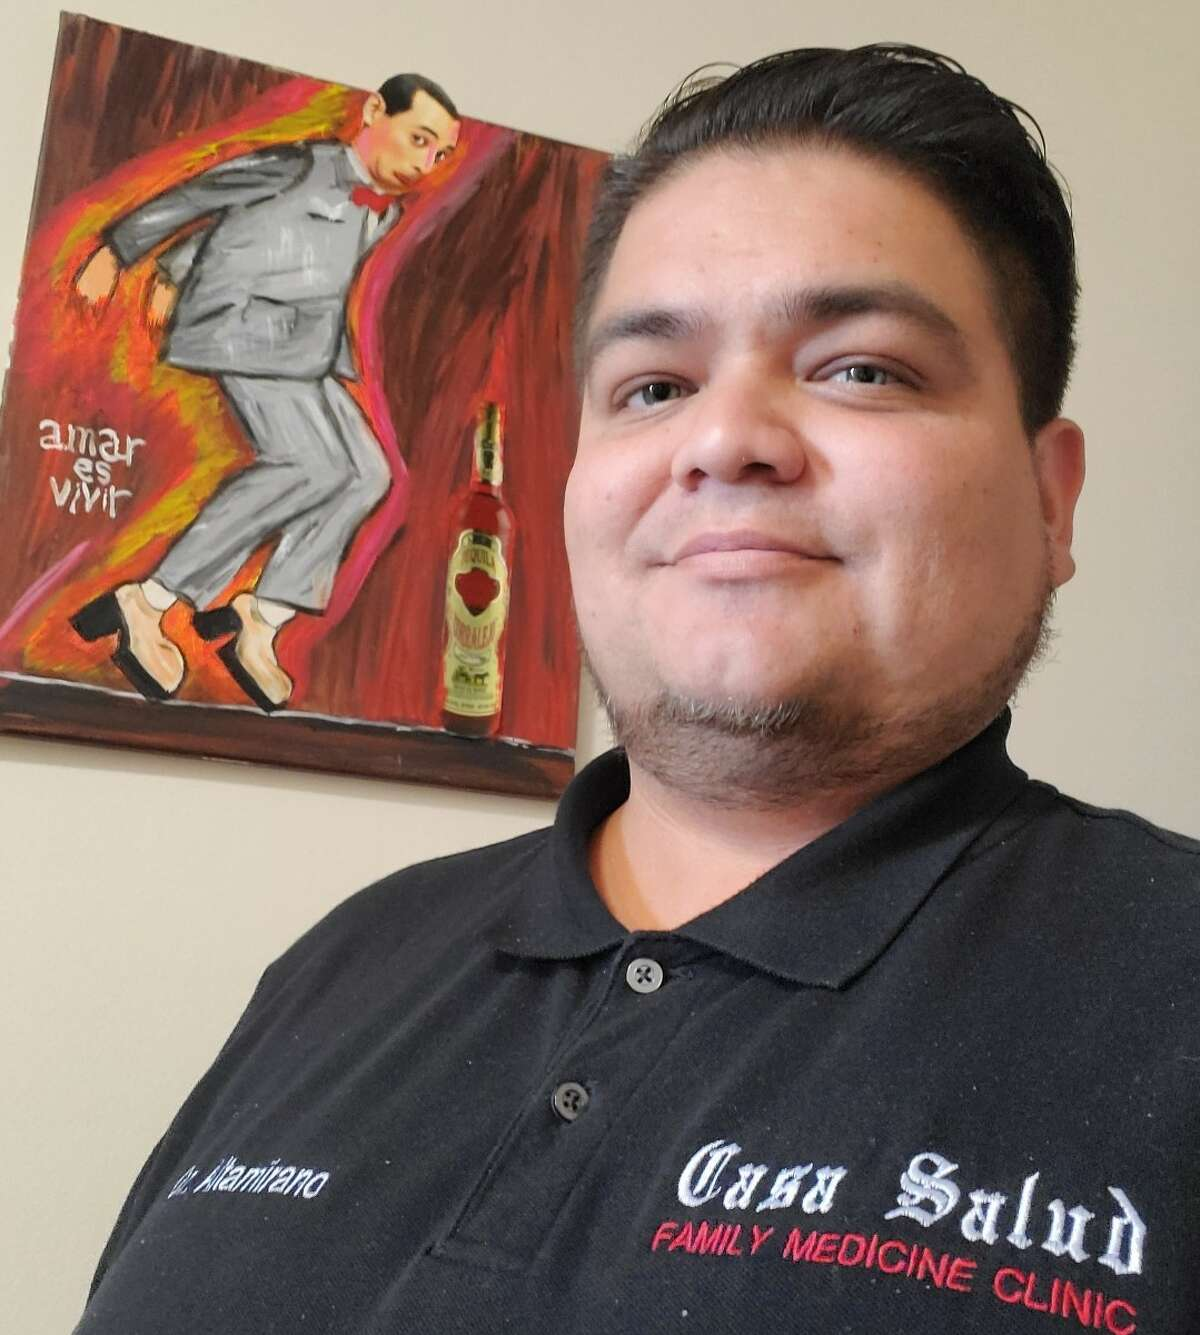 A San Antonio doctor was recently featured on